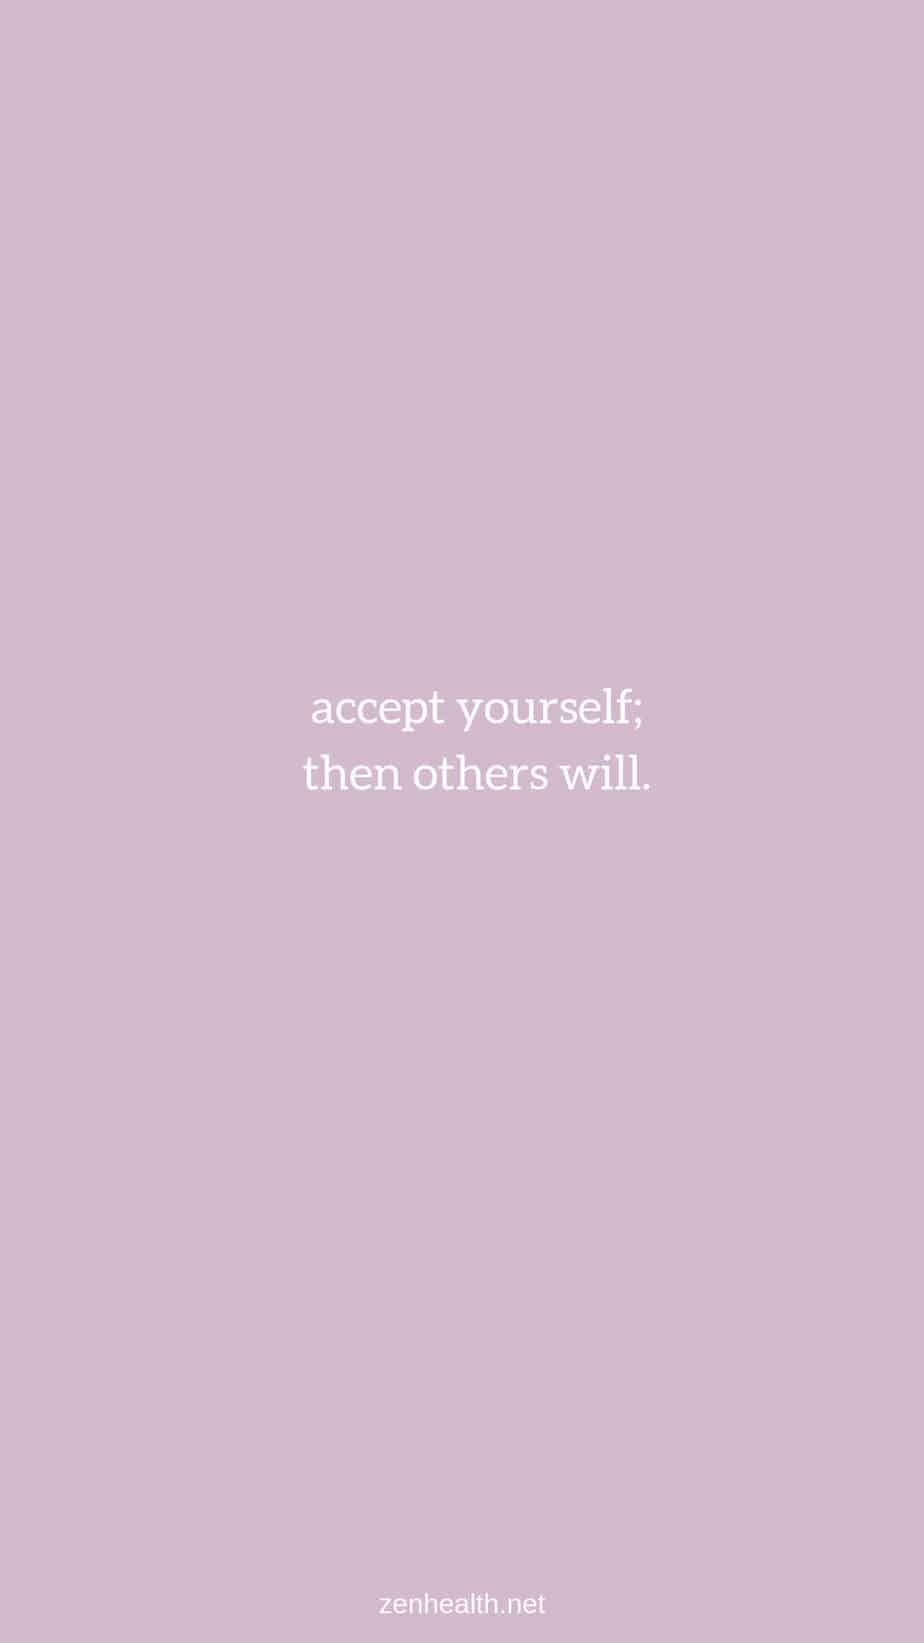 Confidence Quotes: Accept Yourself Then Others Will